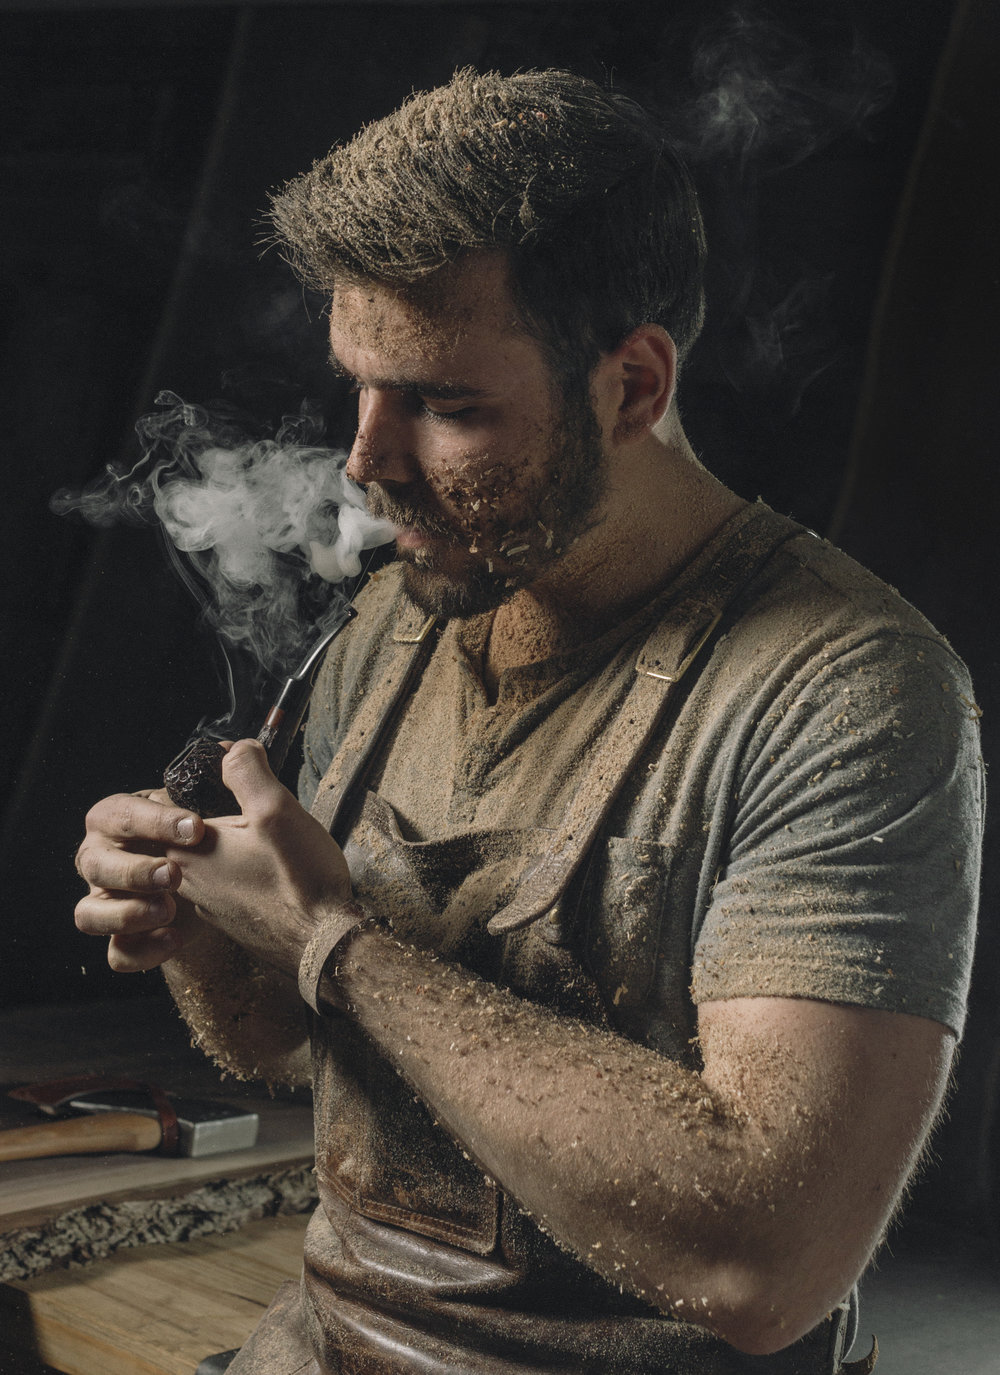 Artisan woodworker smoking pipe portrait